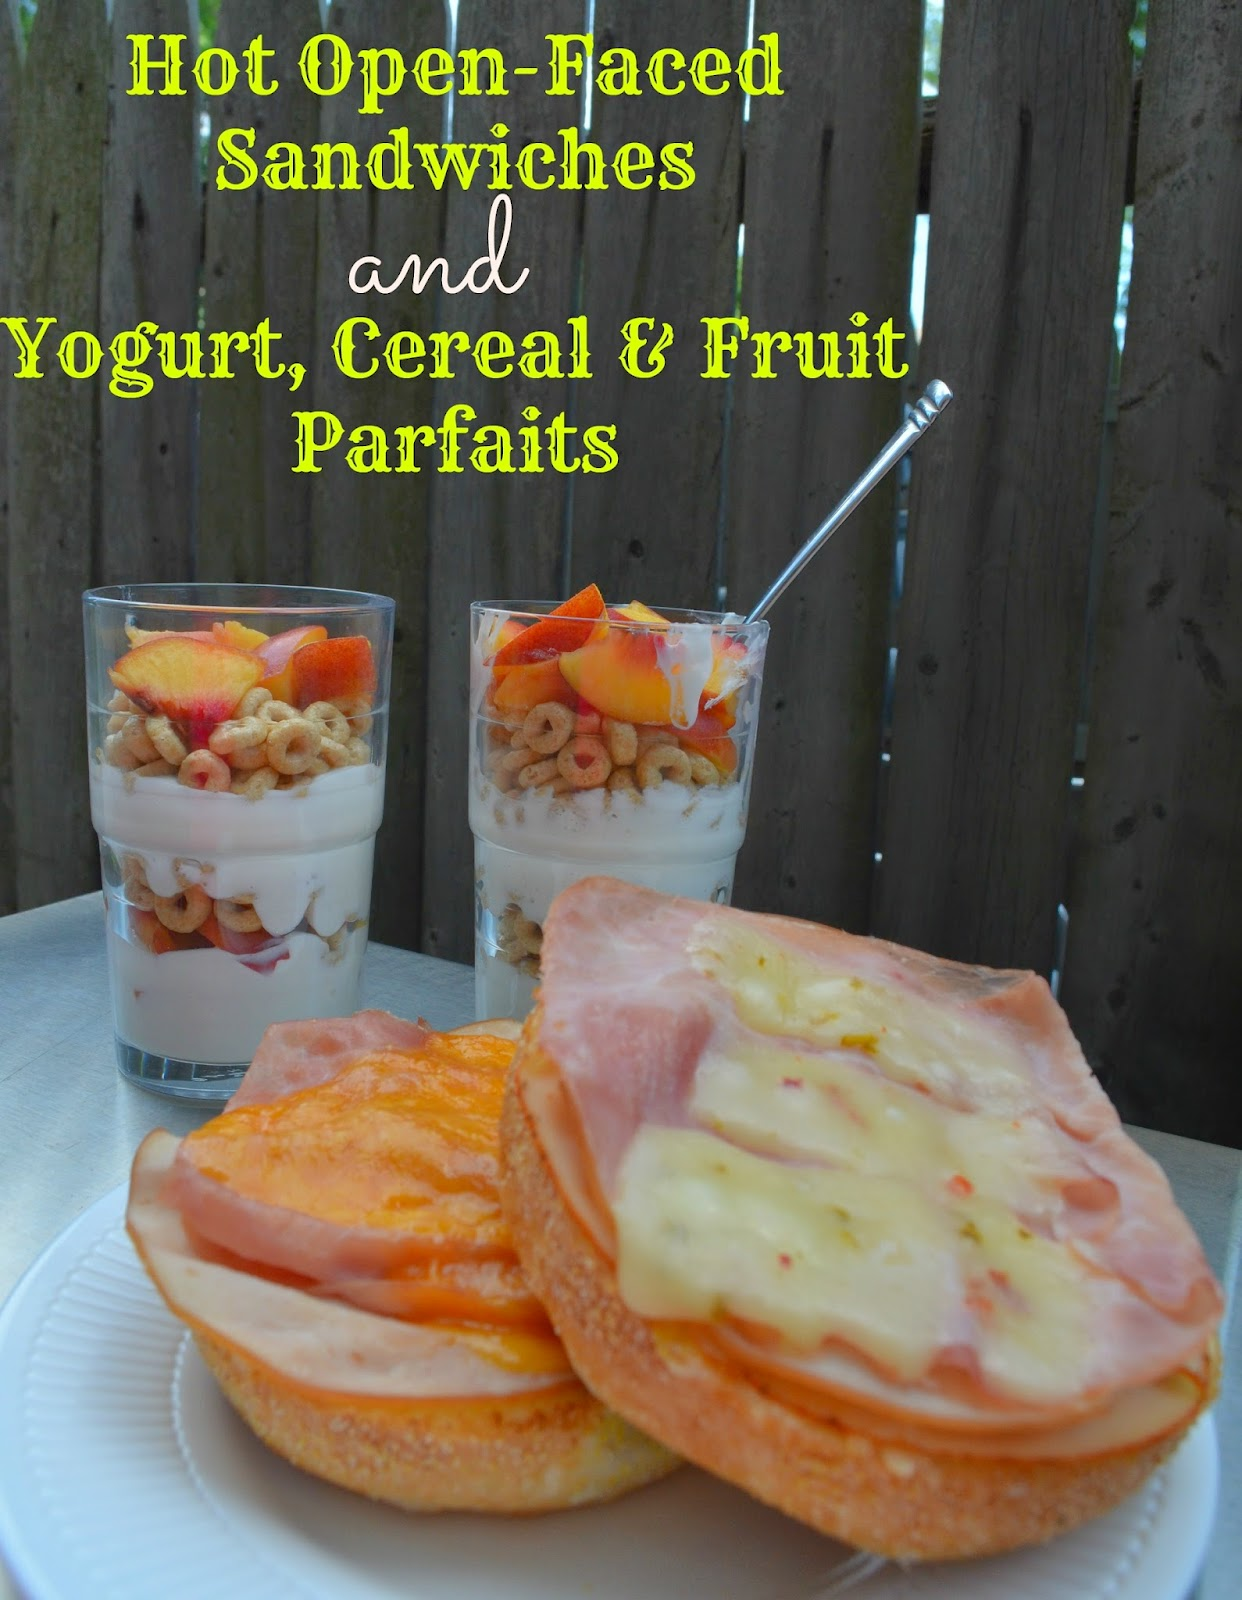 hot open-faced lunchmeat sandwiches and yogurt, cereal and fruit parfaits - easy and yummy! #PriceChopperB2S #shop #recipe #lunch #sandwich #greekyogurt